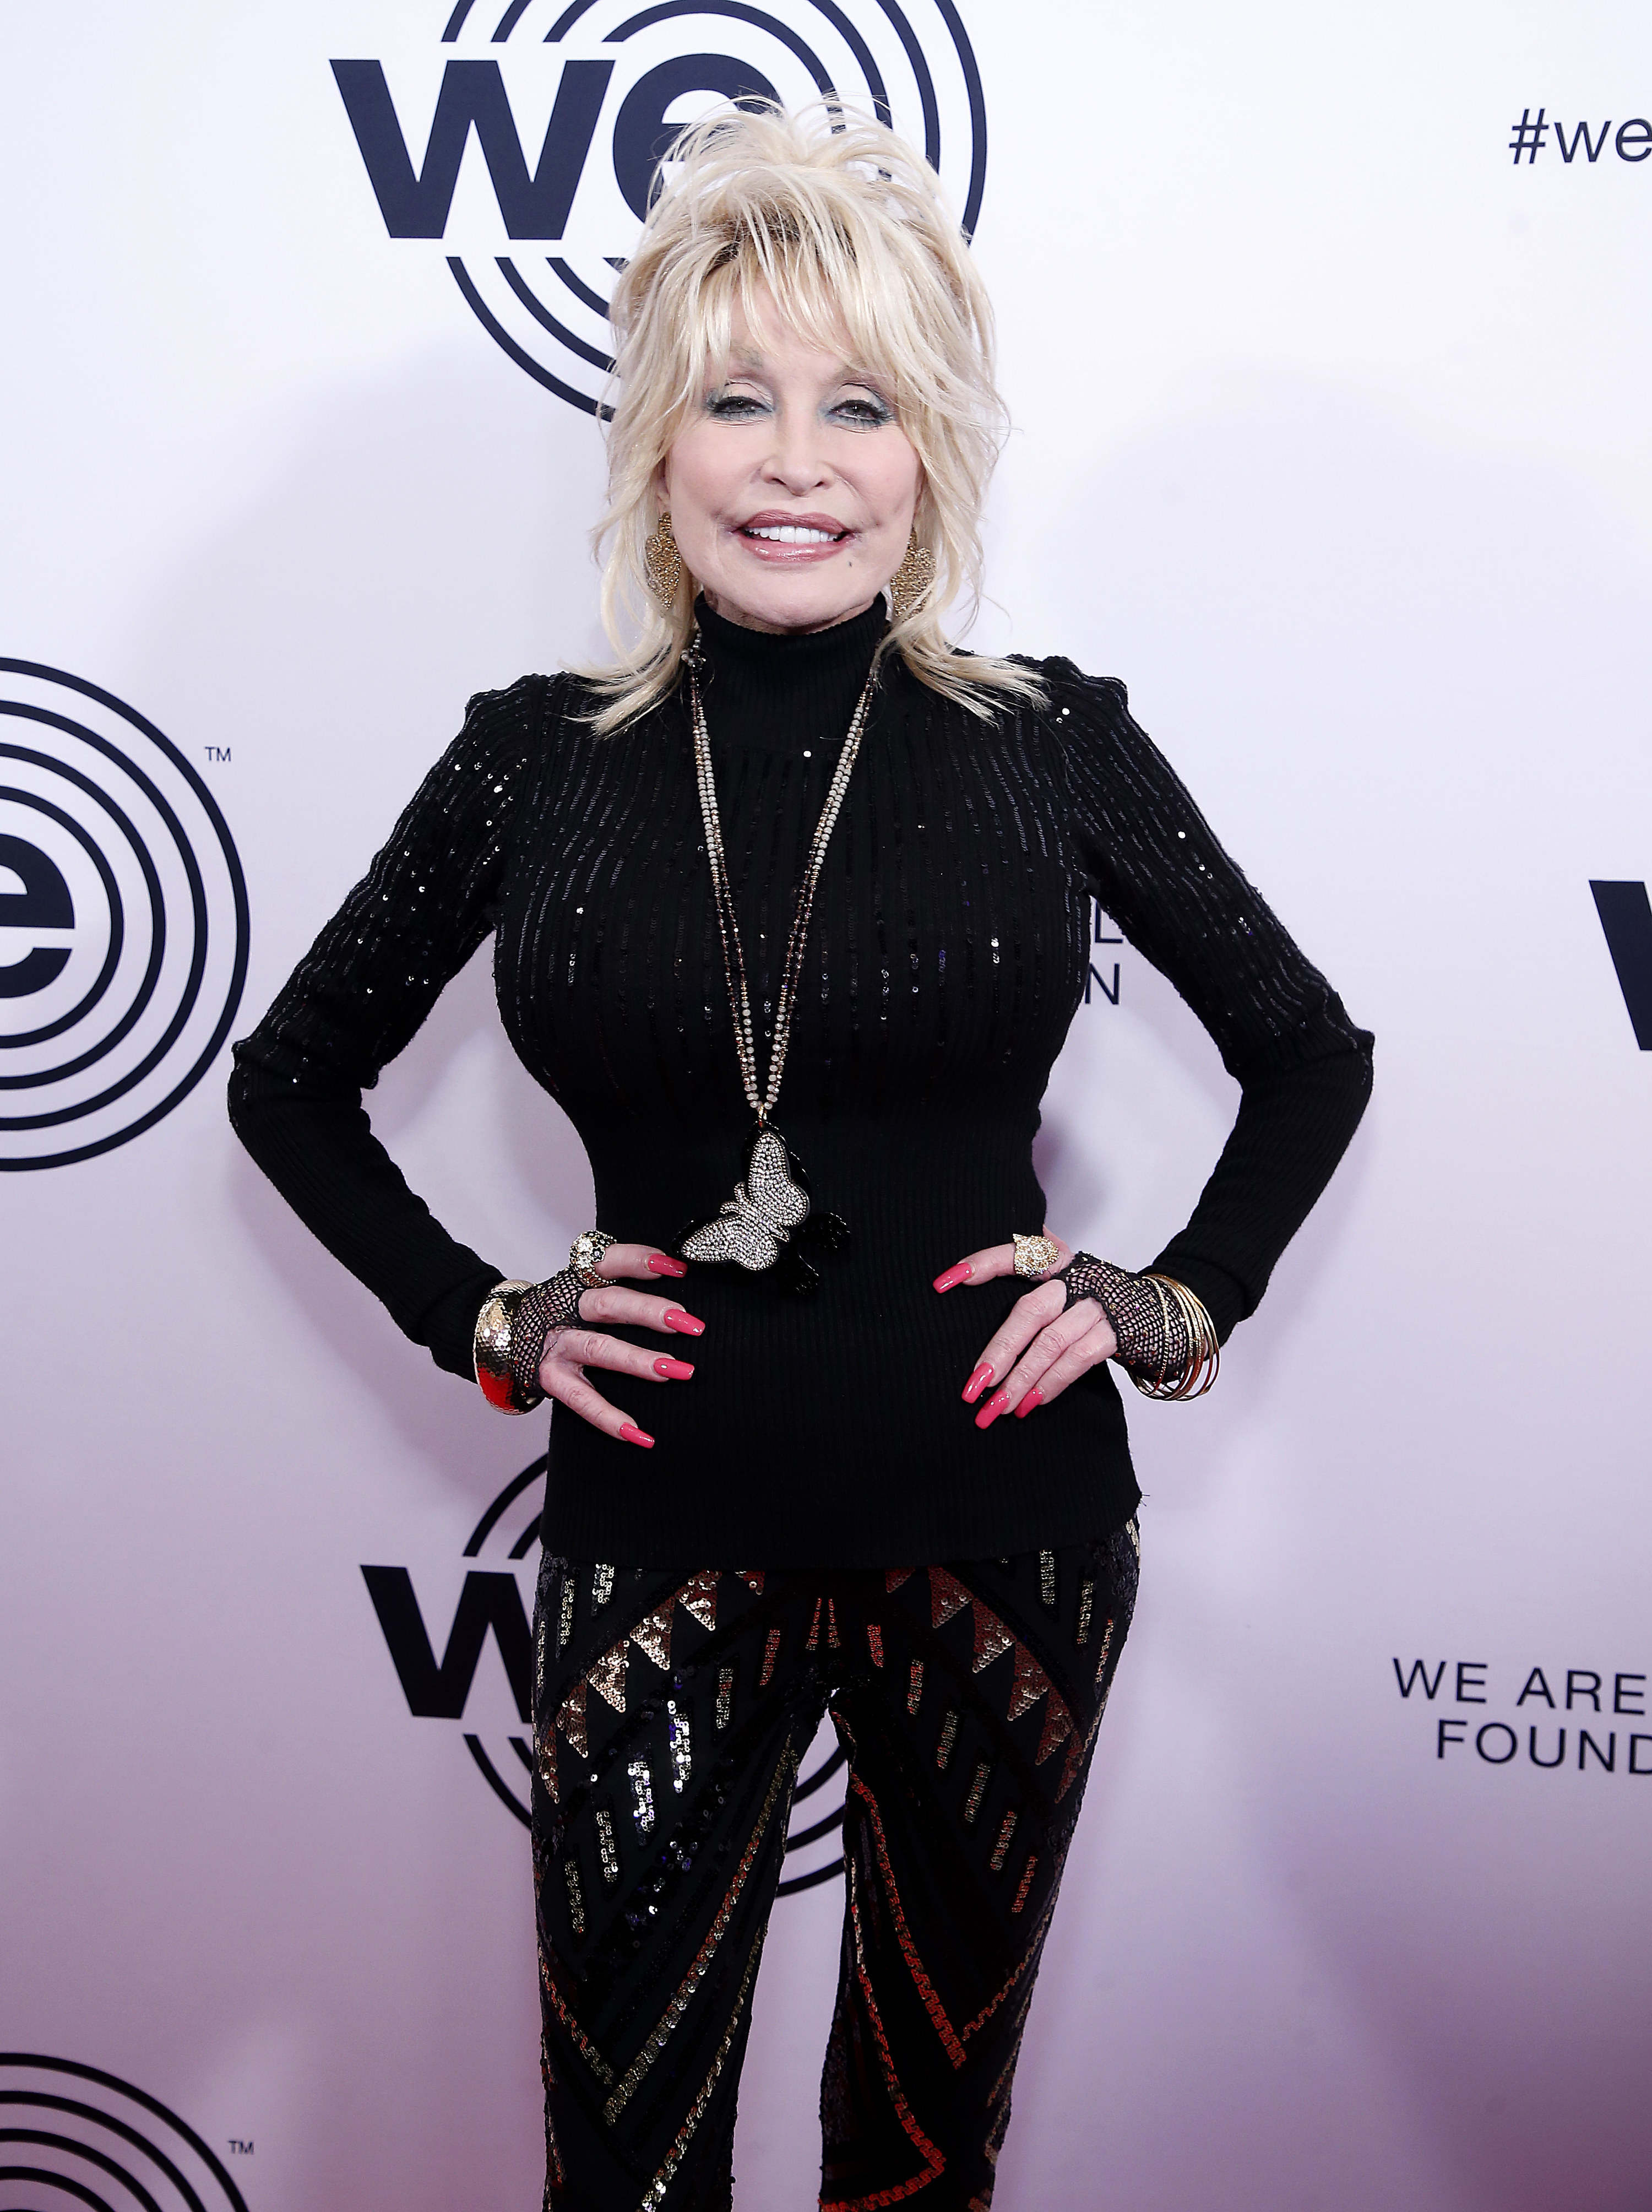 Dolly on a red carpet for We